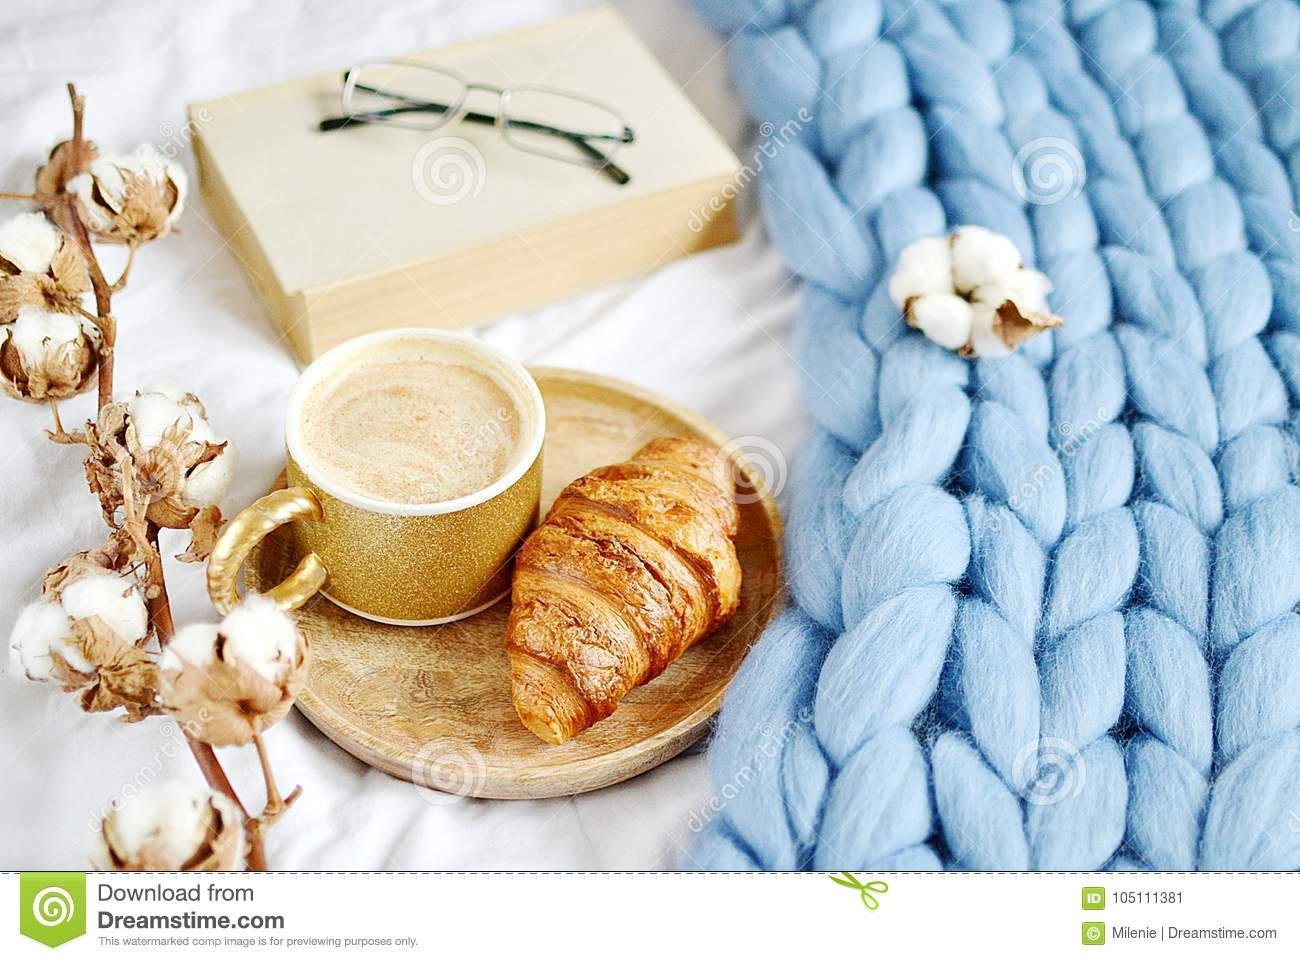 Cup with cappuccino, croissant, blue pastel giant plaid